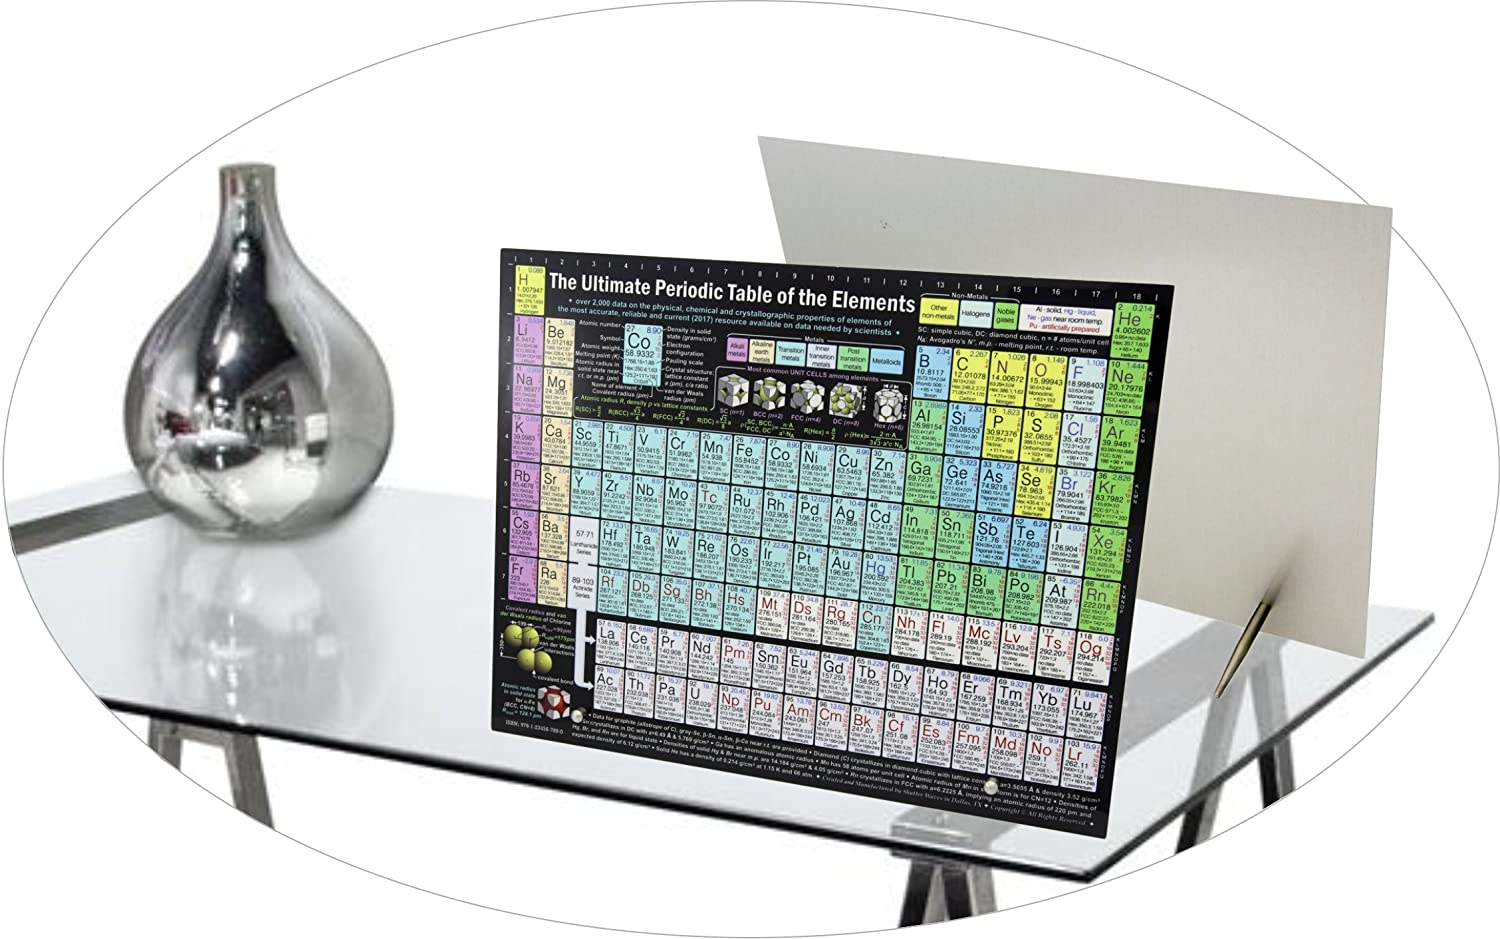 Student's Periodic Table New Updated Easy to Read Professional Chart for Office Study Library and Classrooms - Best Gift for Students and Educators (10x13 in. Acrylic Print) Shutter Waves